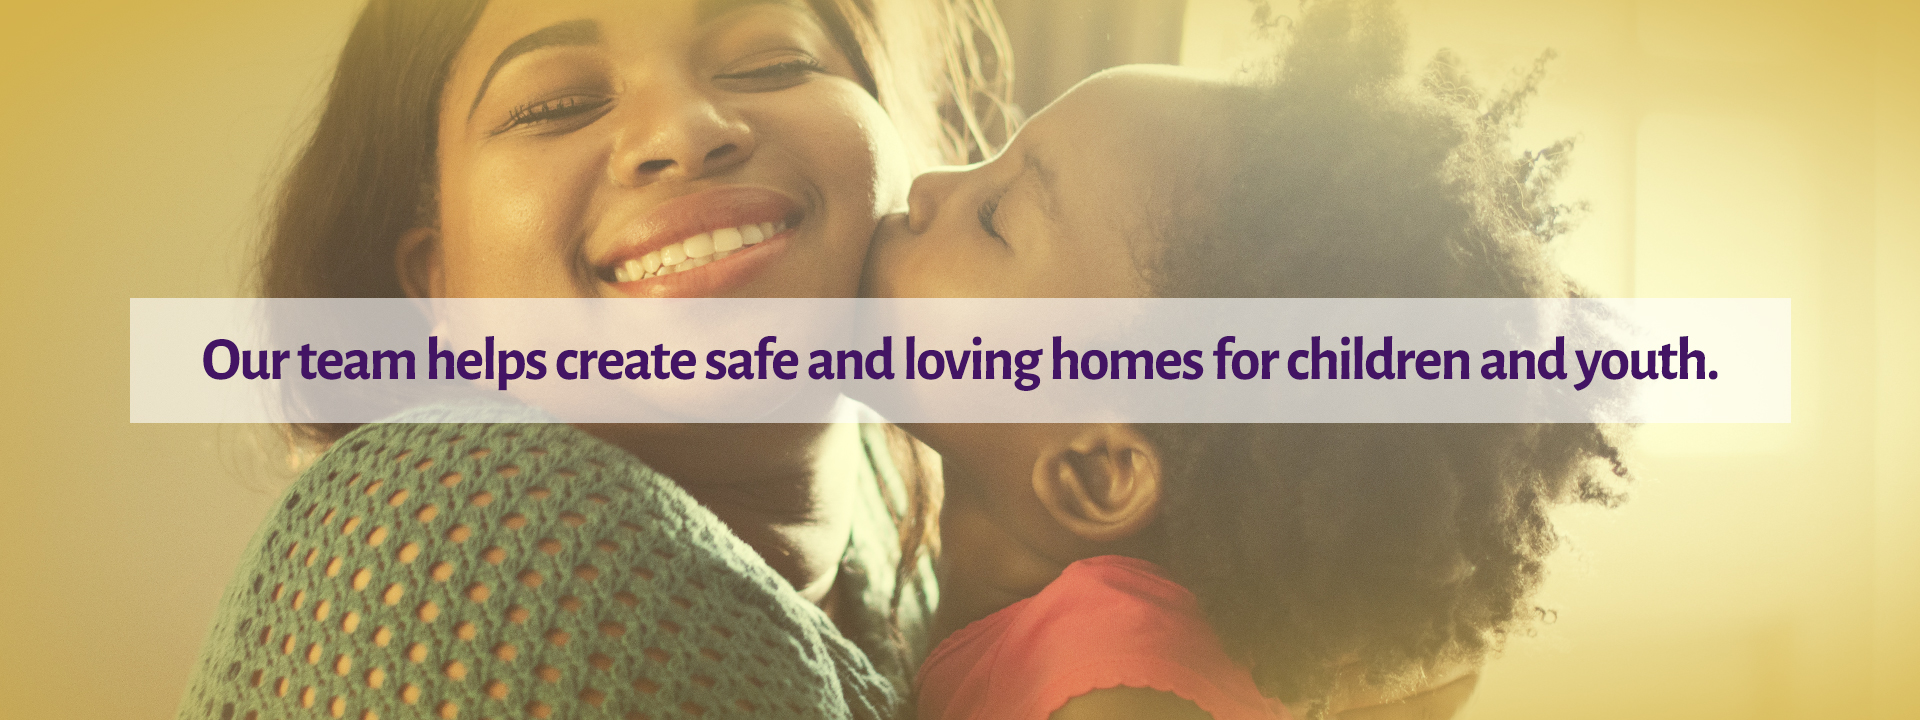 Our team helps create safe and loving homes for children and youth.